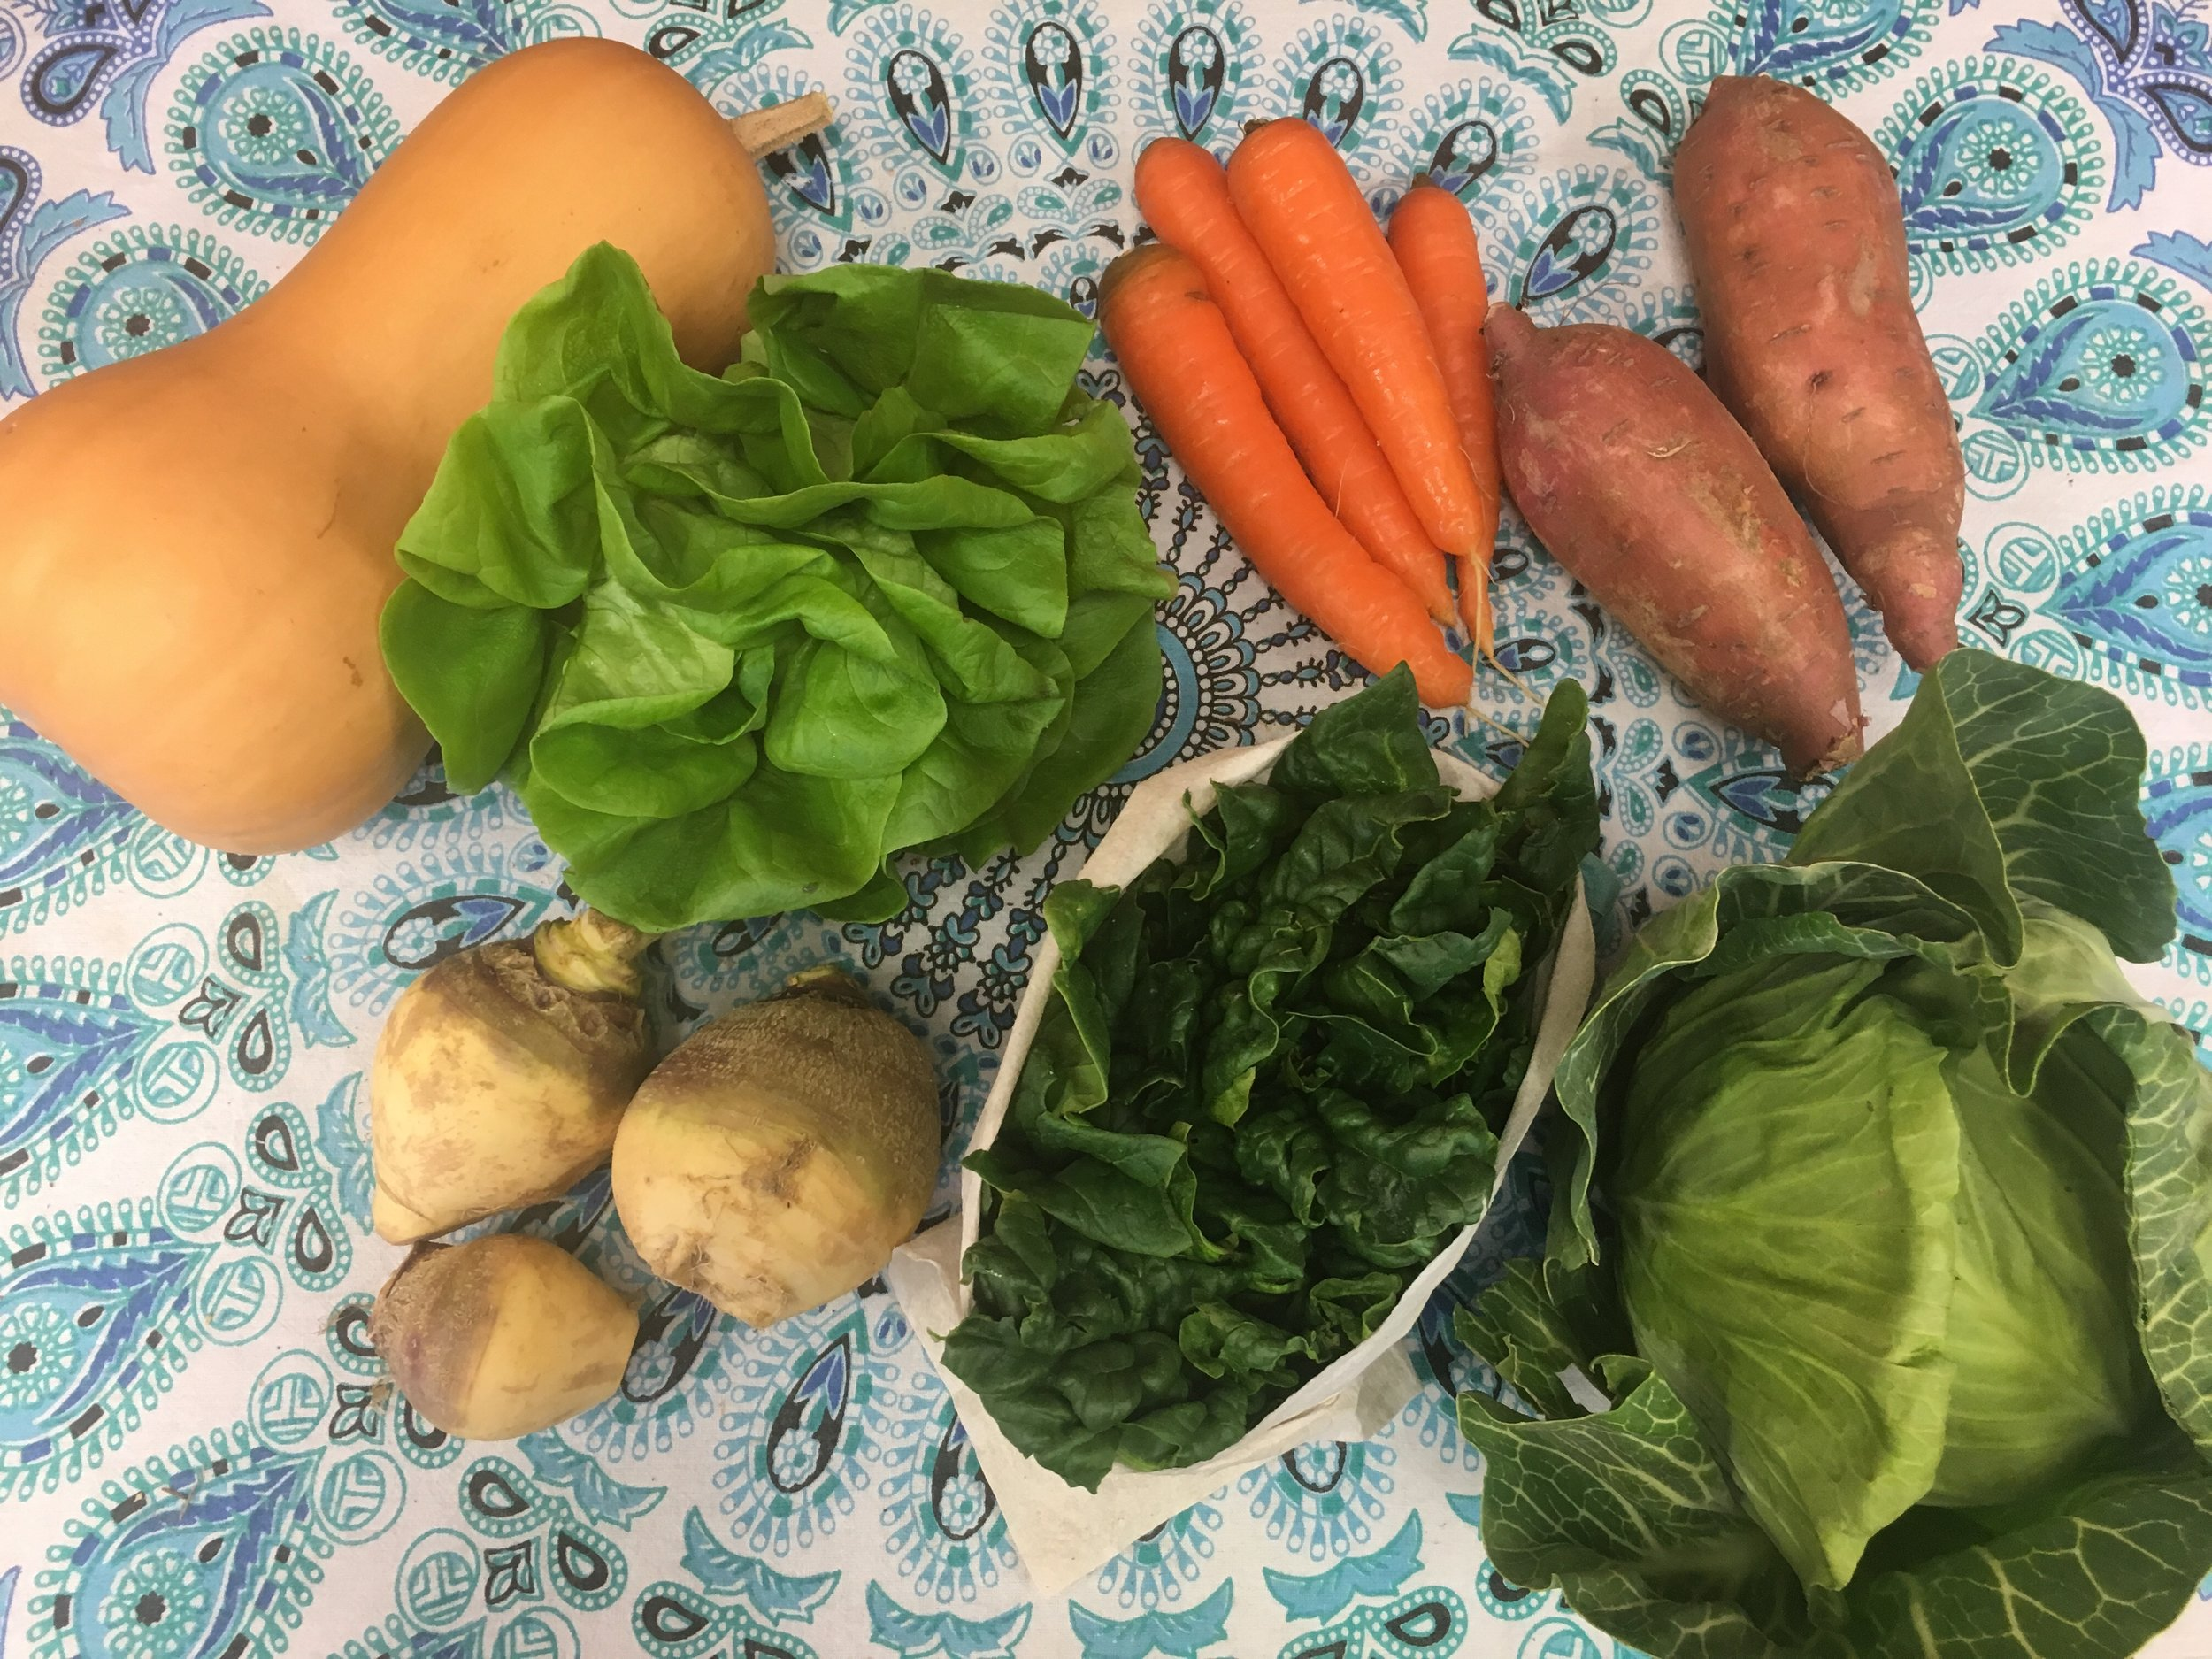 Southern Comfort small- butternut squash, Bibb lettuce, carrots, garnet sweet potatoes, rutabaga, spinach, and green cabbage.